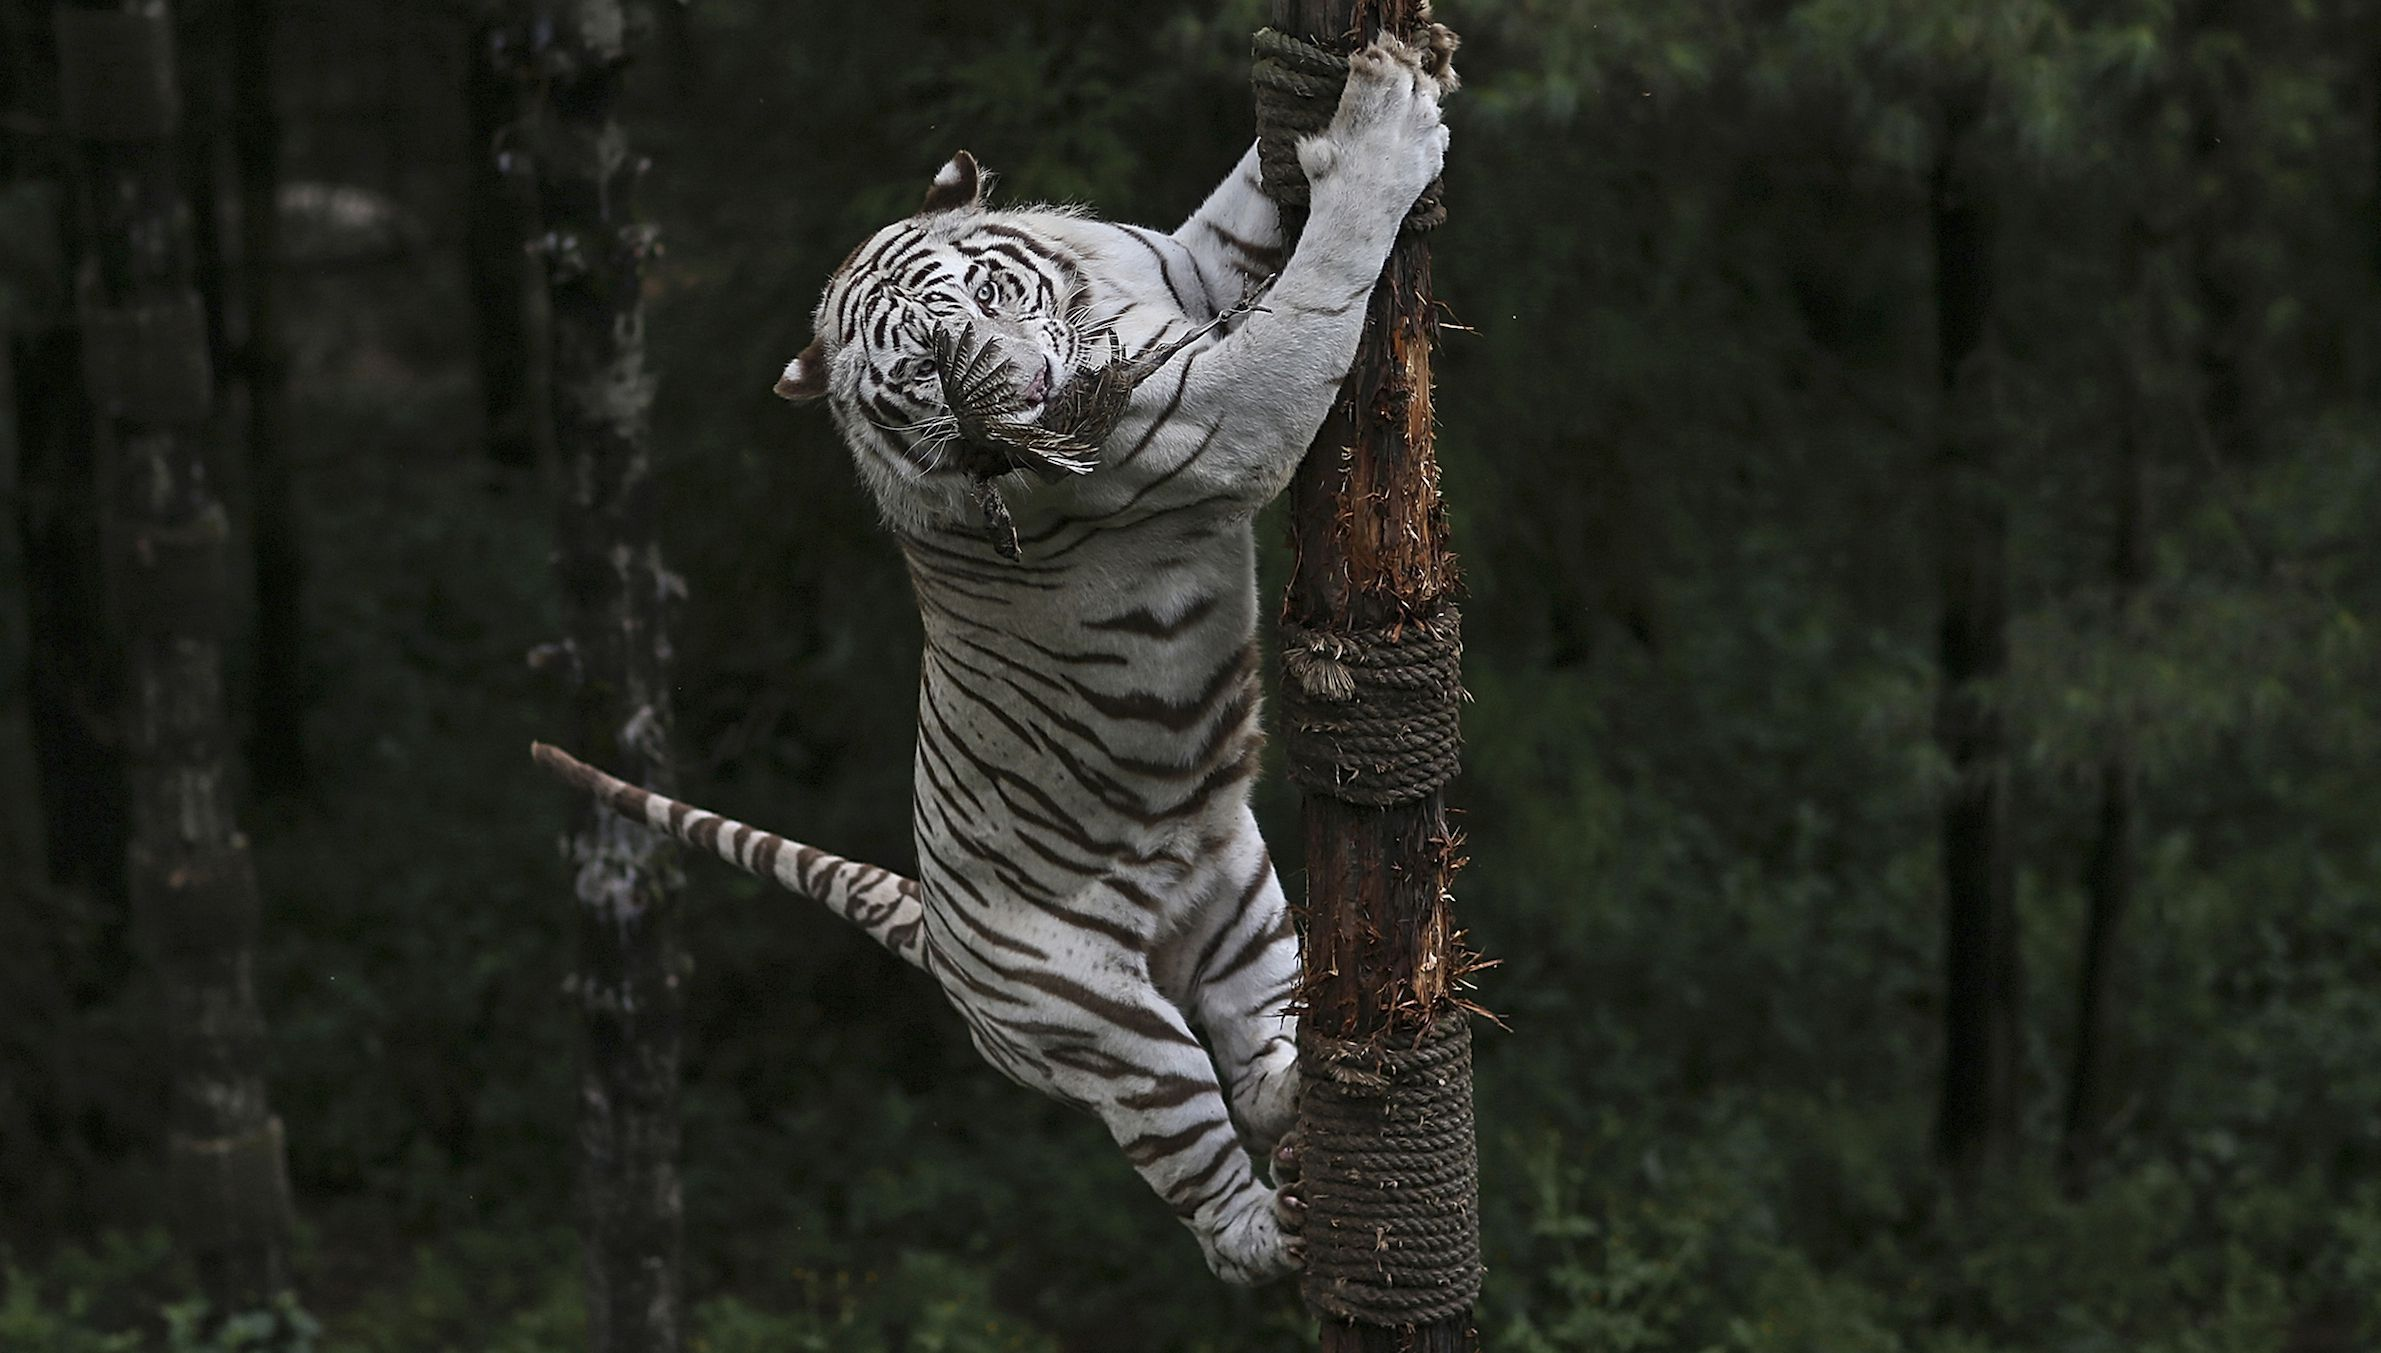 A 6-year-old female White Bengal tiger climbs on a tree as it catches a pheasant hanged by a keeper, at Yunnan Wildlife Park in Kunming, Yunnan province September 19, 2014. REUTERS/Wong Campion (CHINA - Tags: SOCIETY ANIMALS) - RTR46V8S